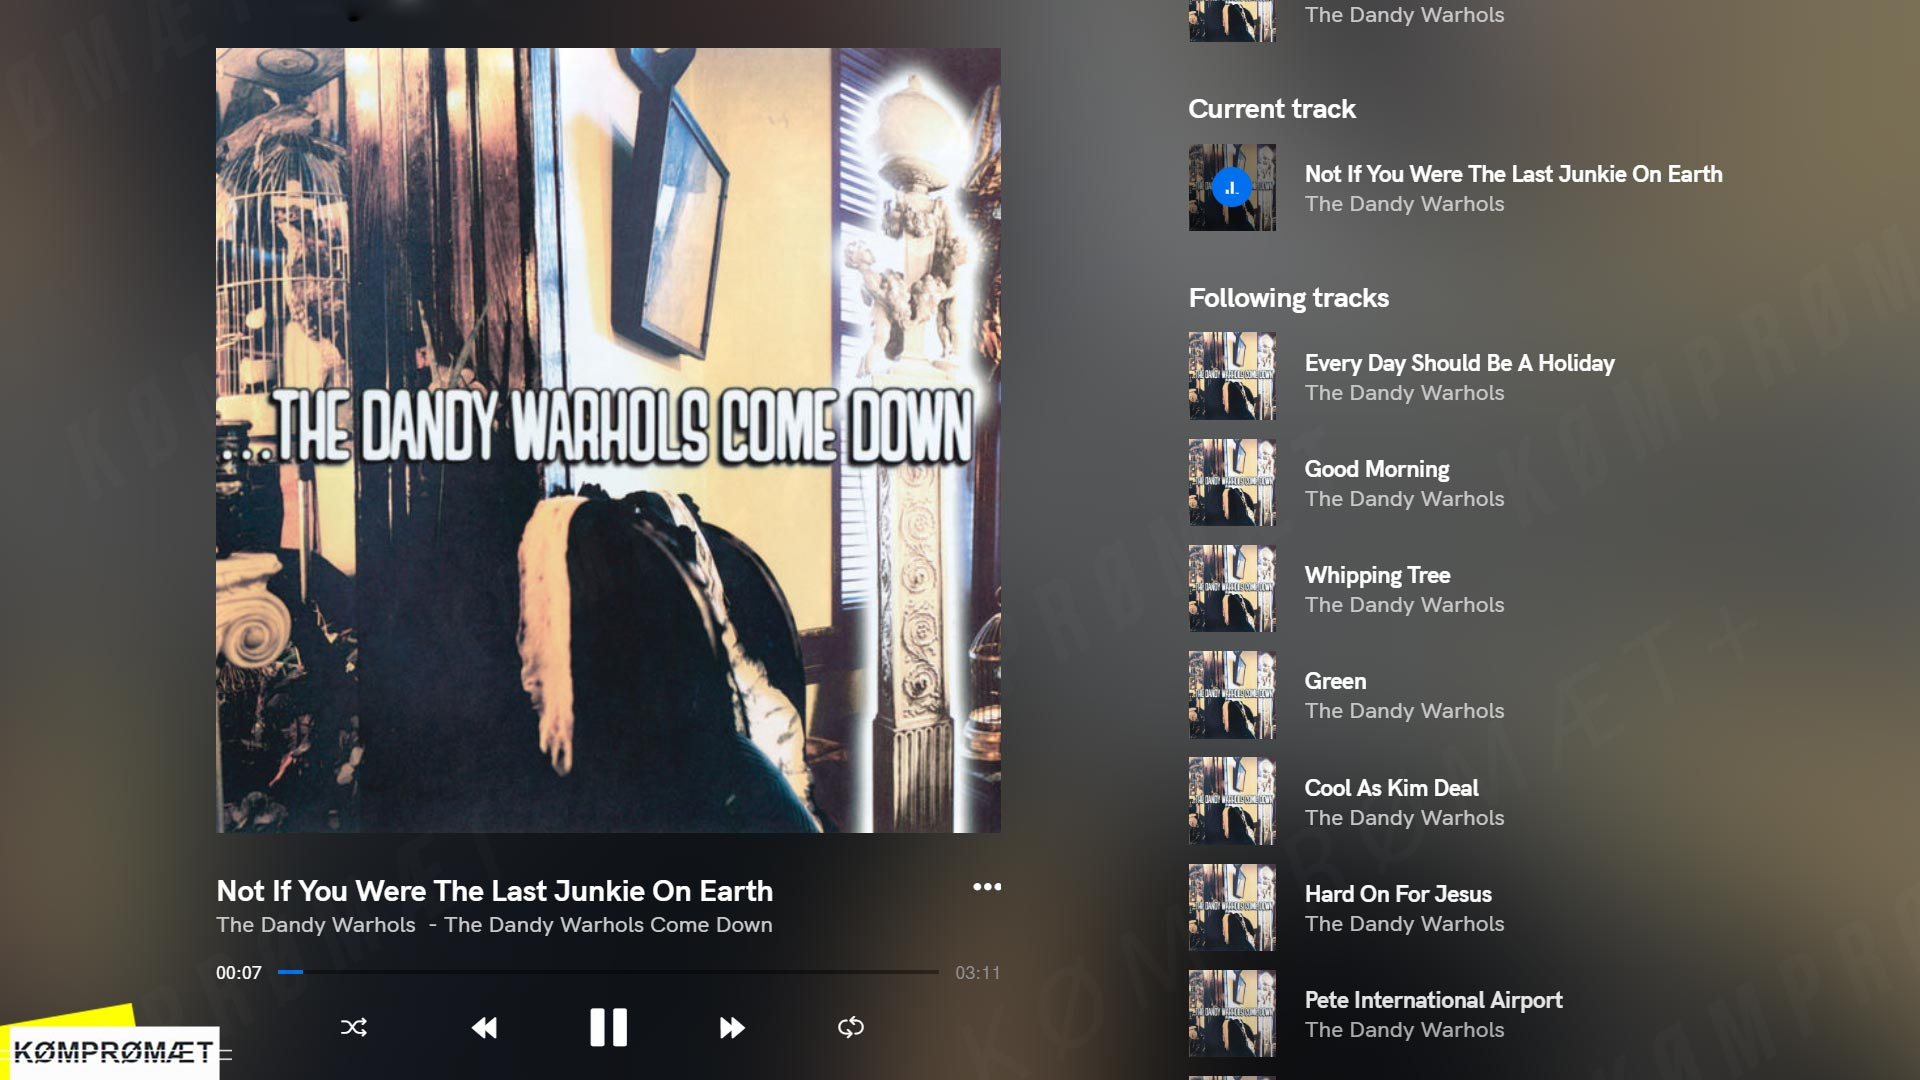 The Dandy Warhols - Not If You Were The Last Junkie On Earth (Qobuz screenshot)